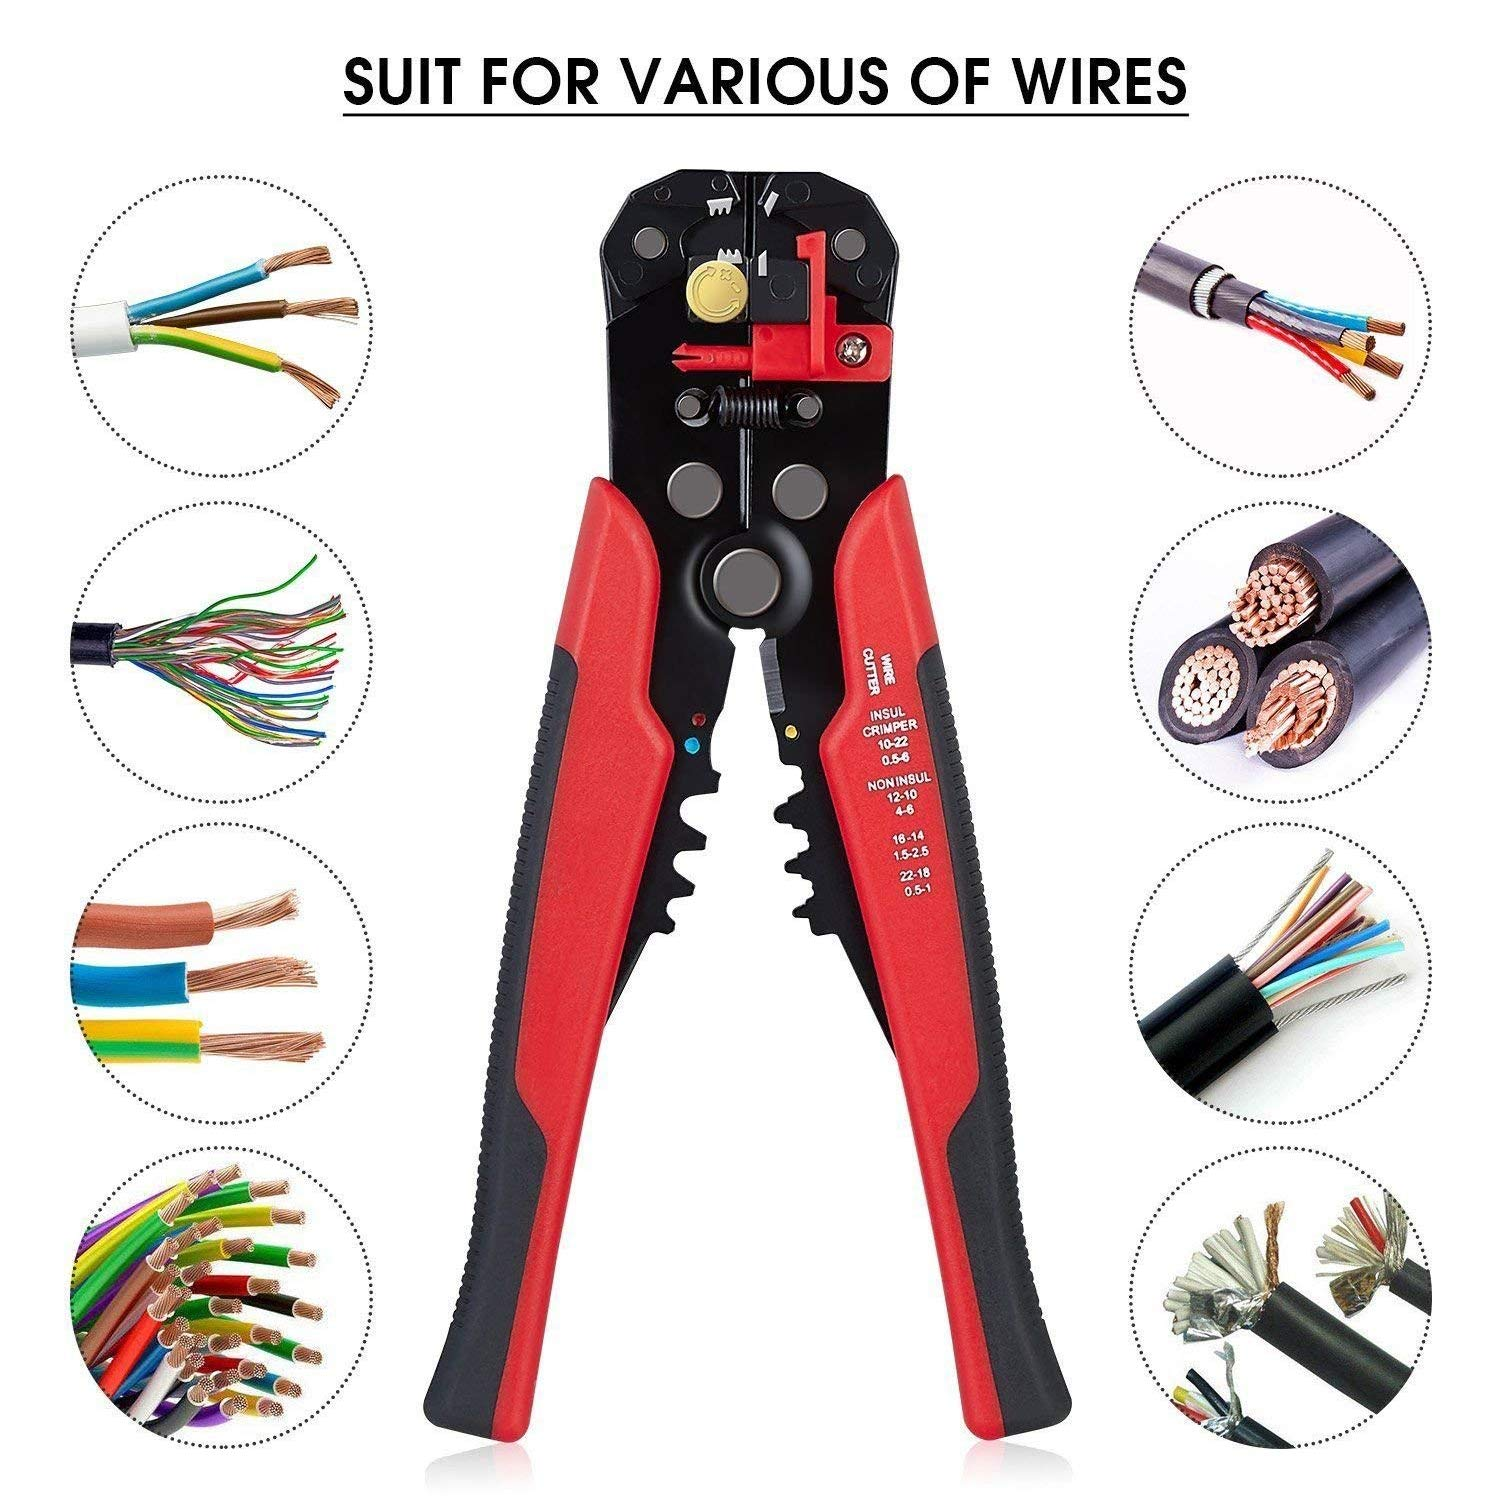 3 in 1 Wire Strippers - 8 inch Self-adjusting Cable Cutter Crimper,Automatic Wire Stripping Tool,10-24 AWG (0.2~6.0mm²) Quickly Pliers,Professional Heavy Duty Industrial Tools(Red)